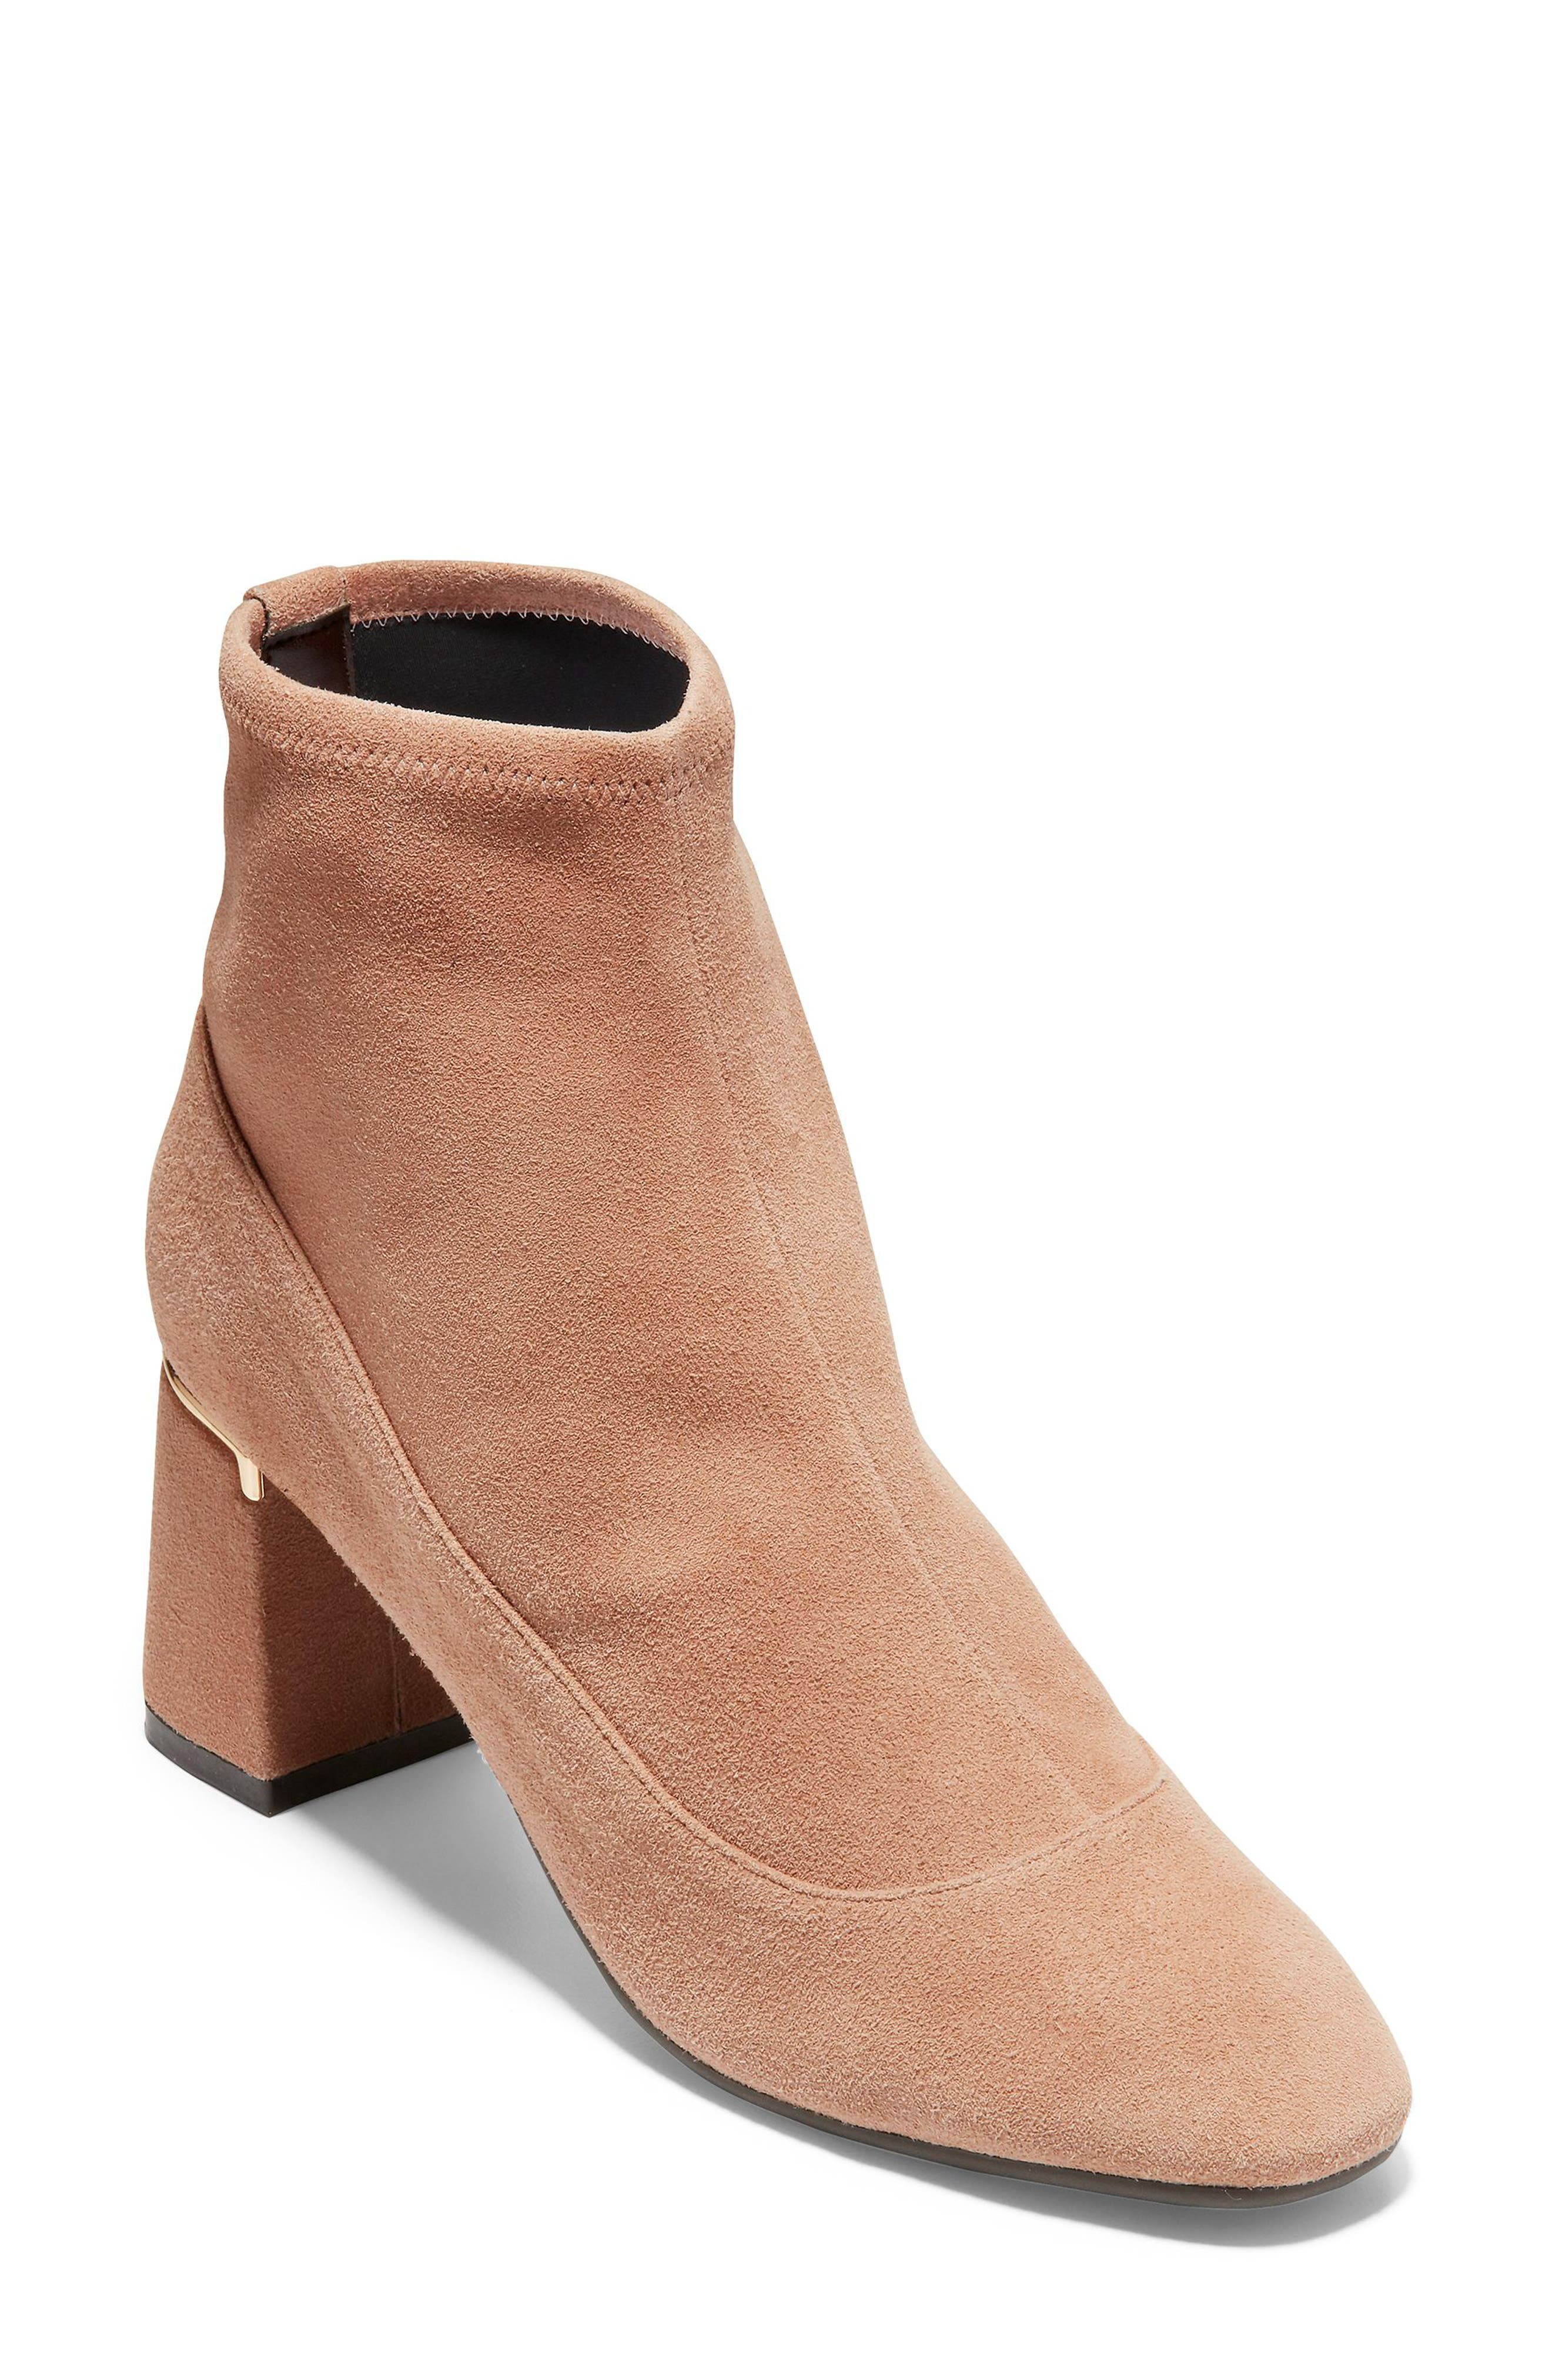 COLE HAAN, Laree Stretch Bootie, Main thumbnail 1, color, 200